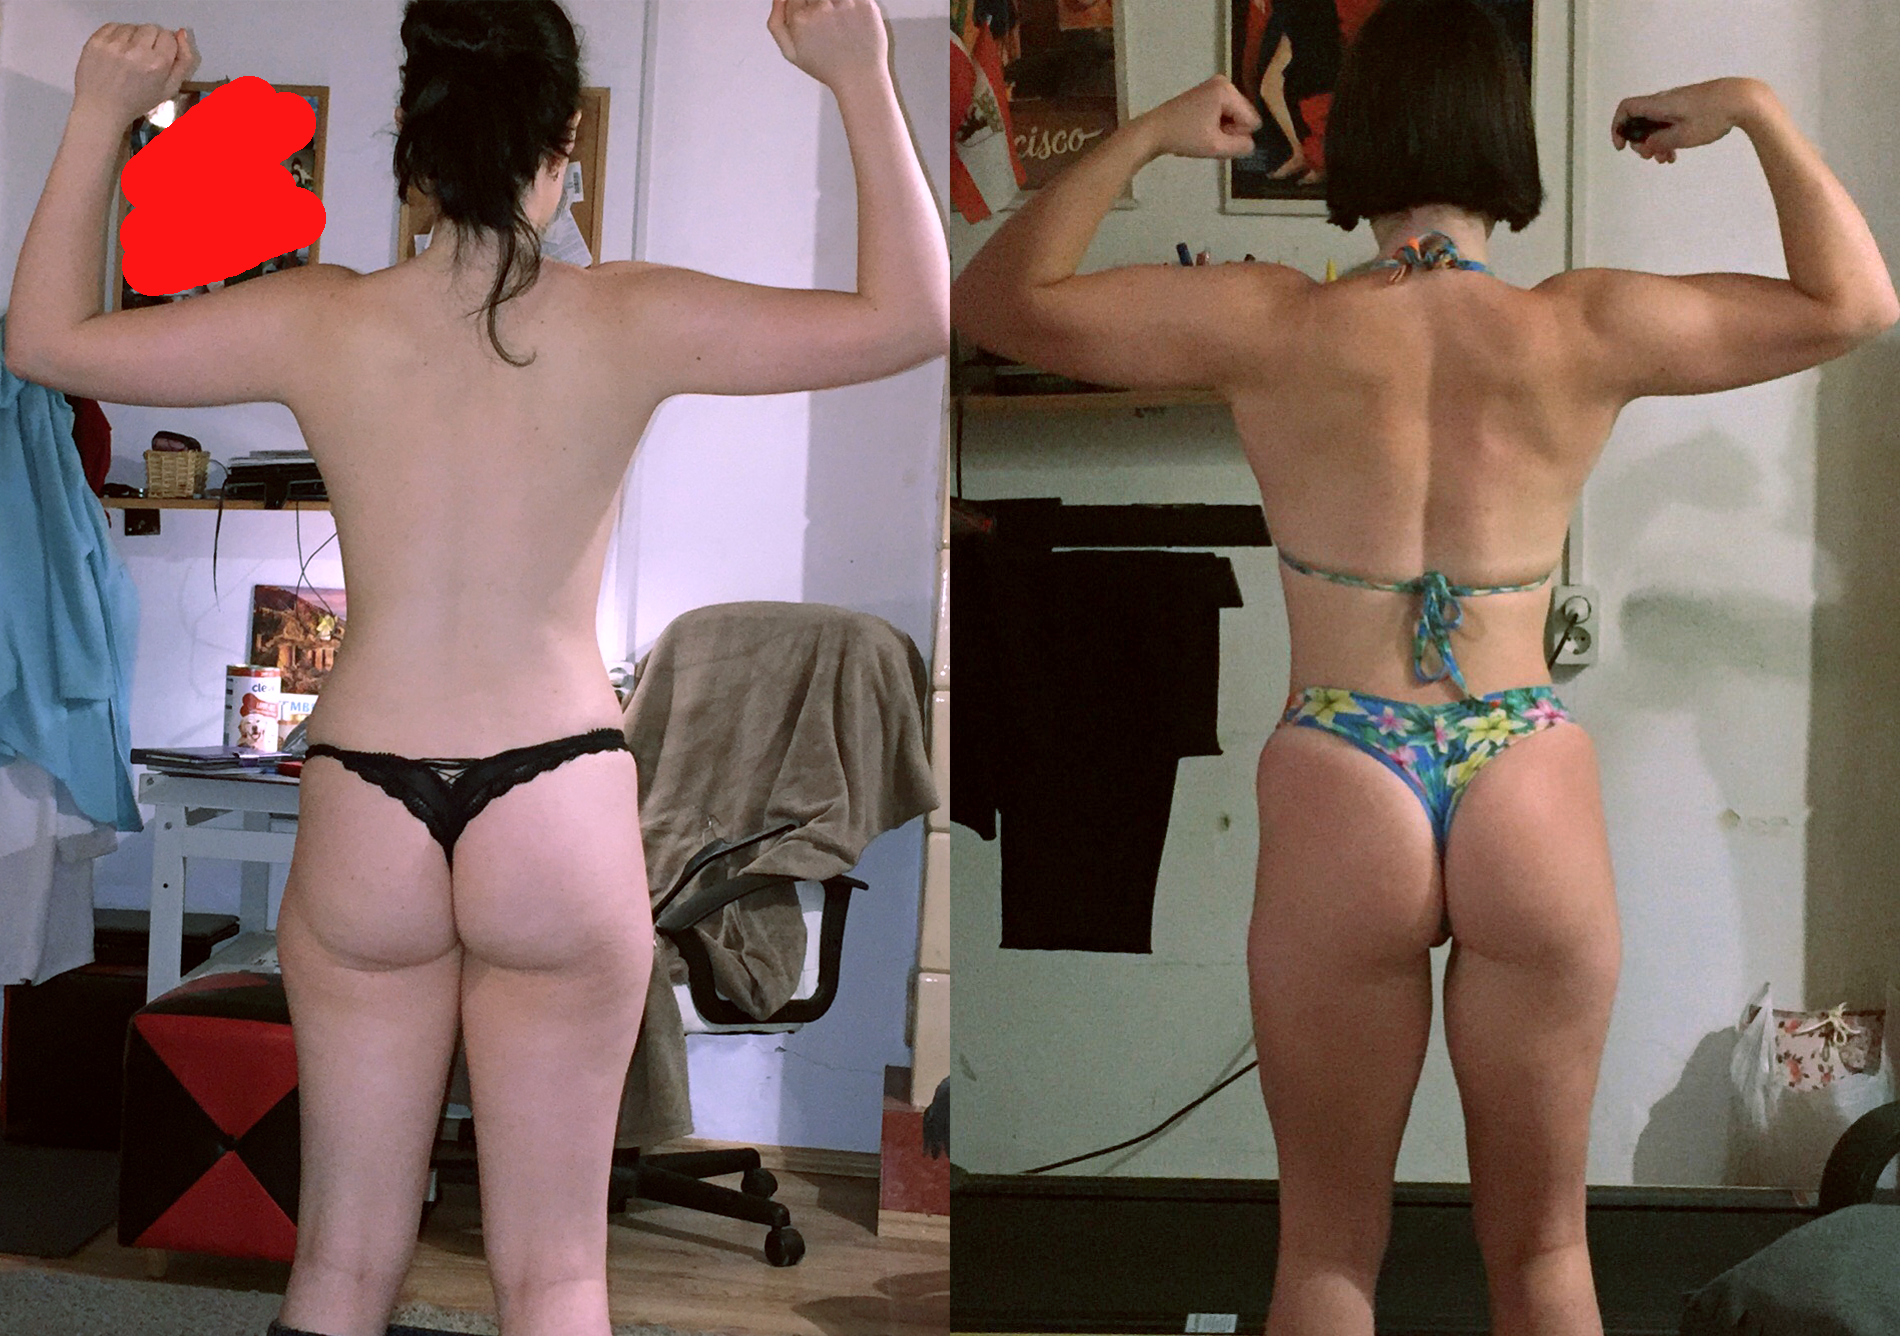 5 foot 5 Female 16 lbs Muscle Gain Before and After 116 lbs to 132 lbs